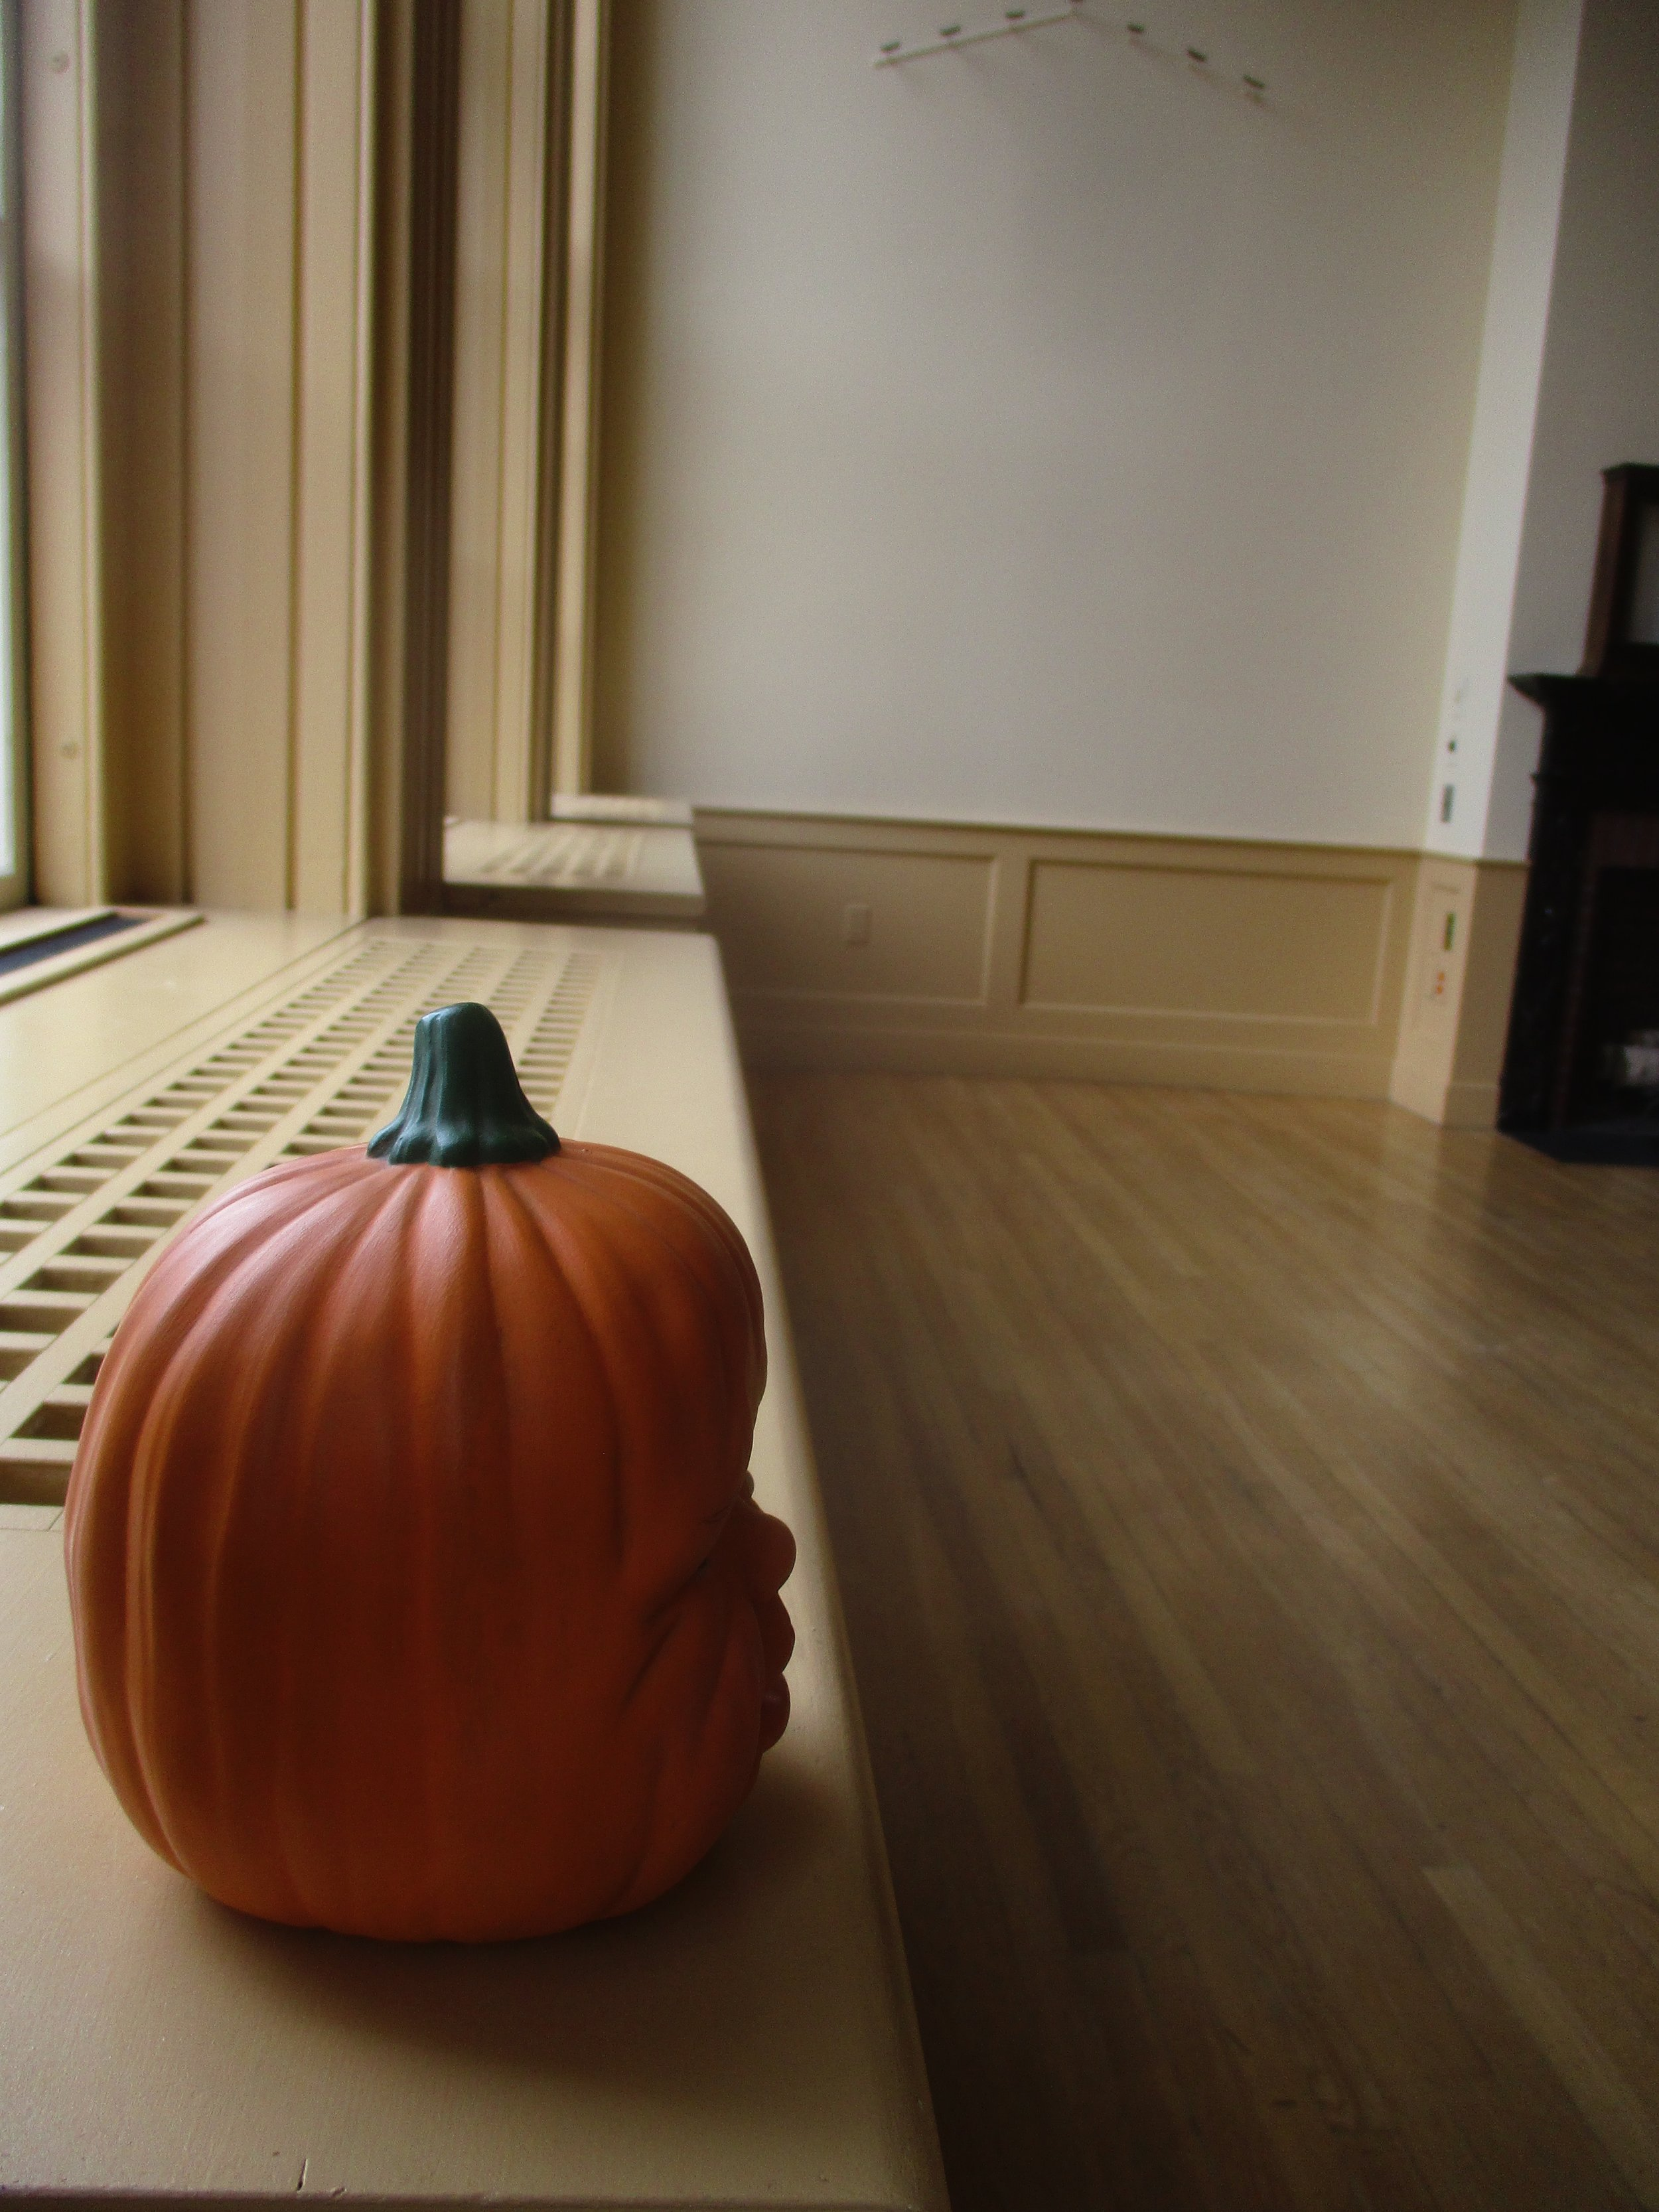 Weeping Baby Pumpkin Head surveys whatever that big room is on the second floor.